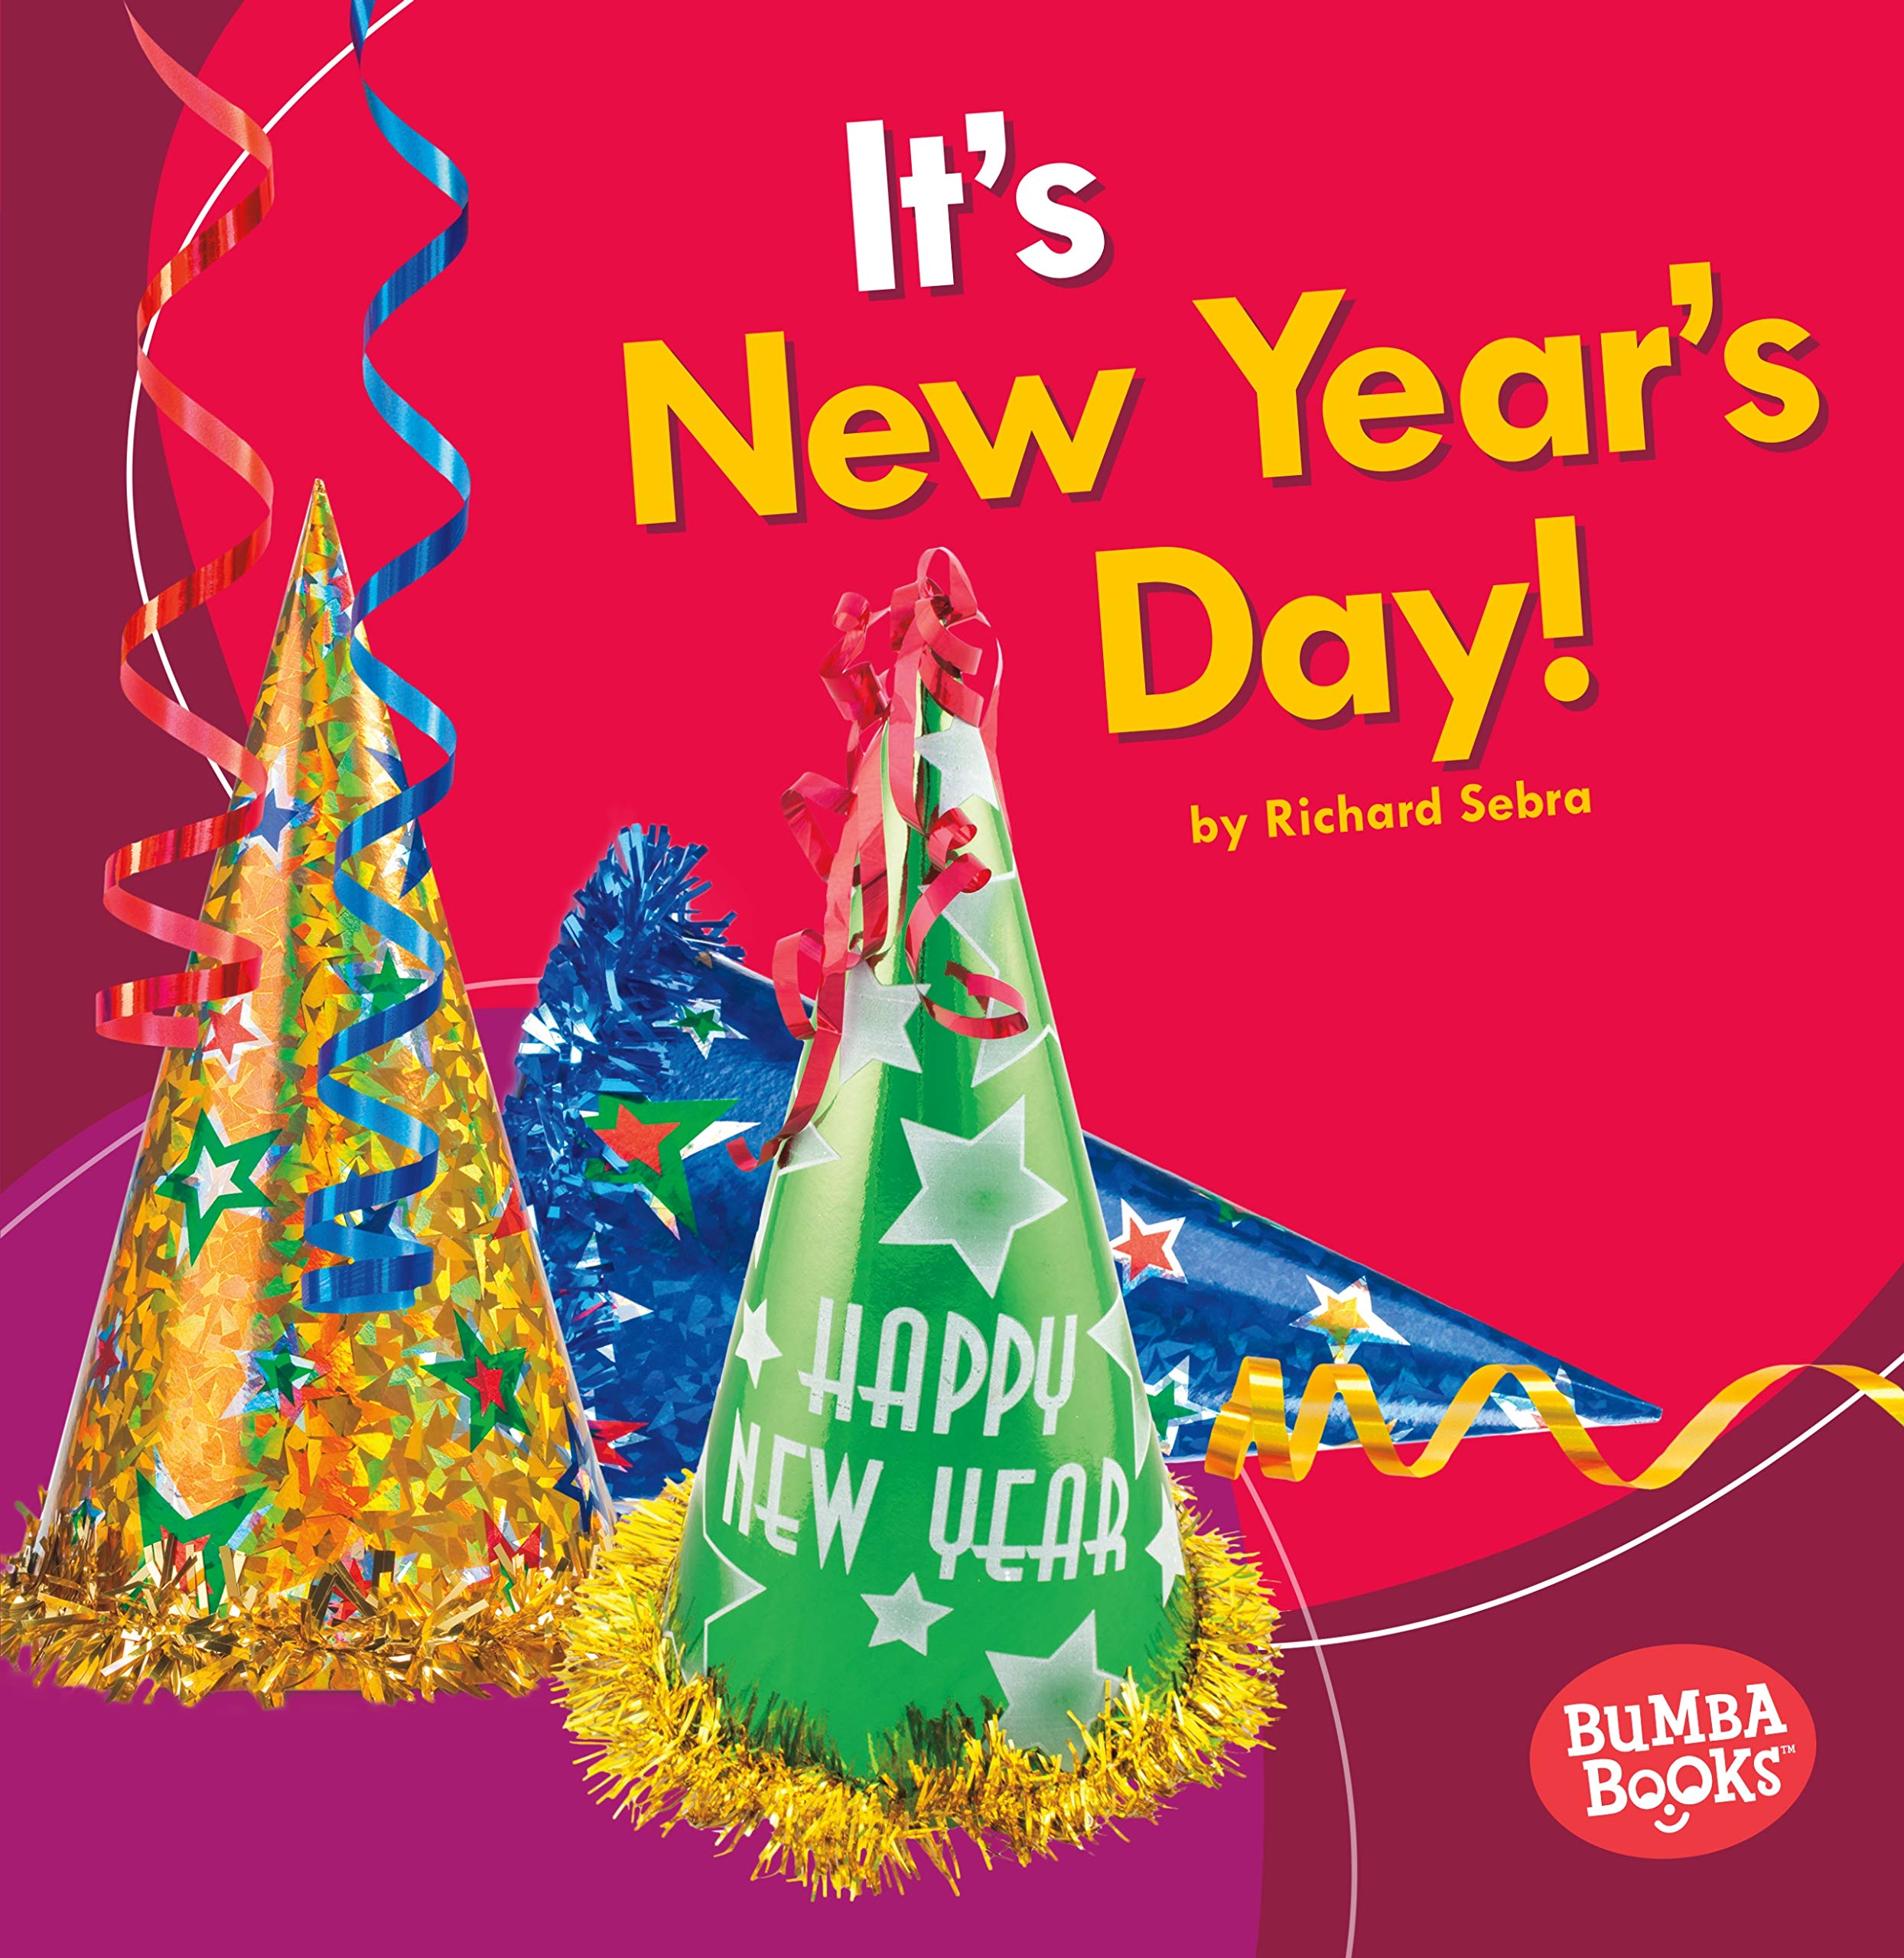 it s new year s day bumba books r it s a holiday sebra richard 9781512429237 amazon com books day bumba books r it s a holiday